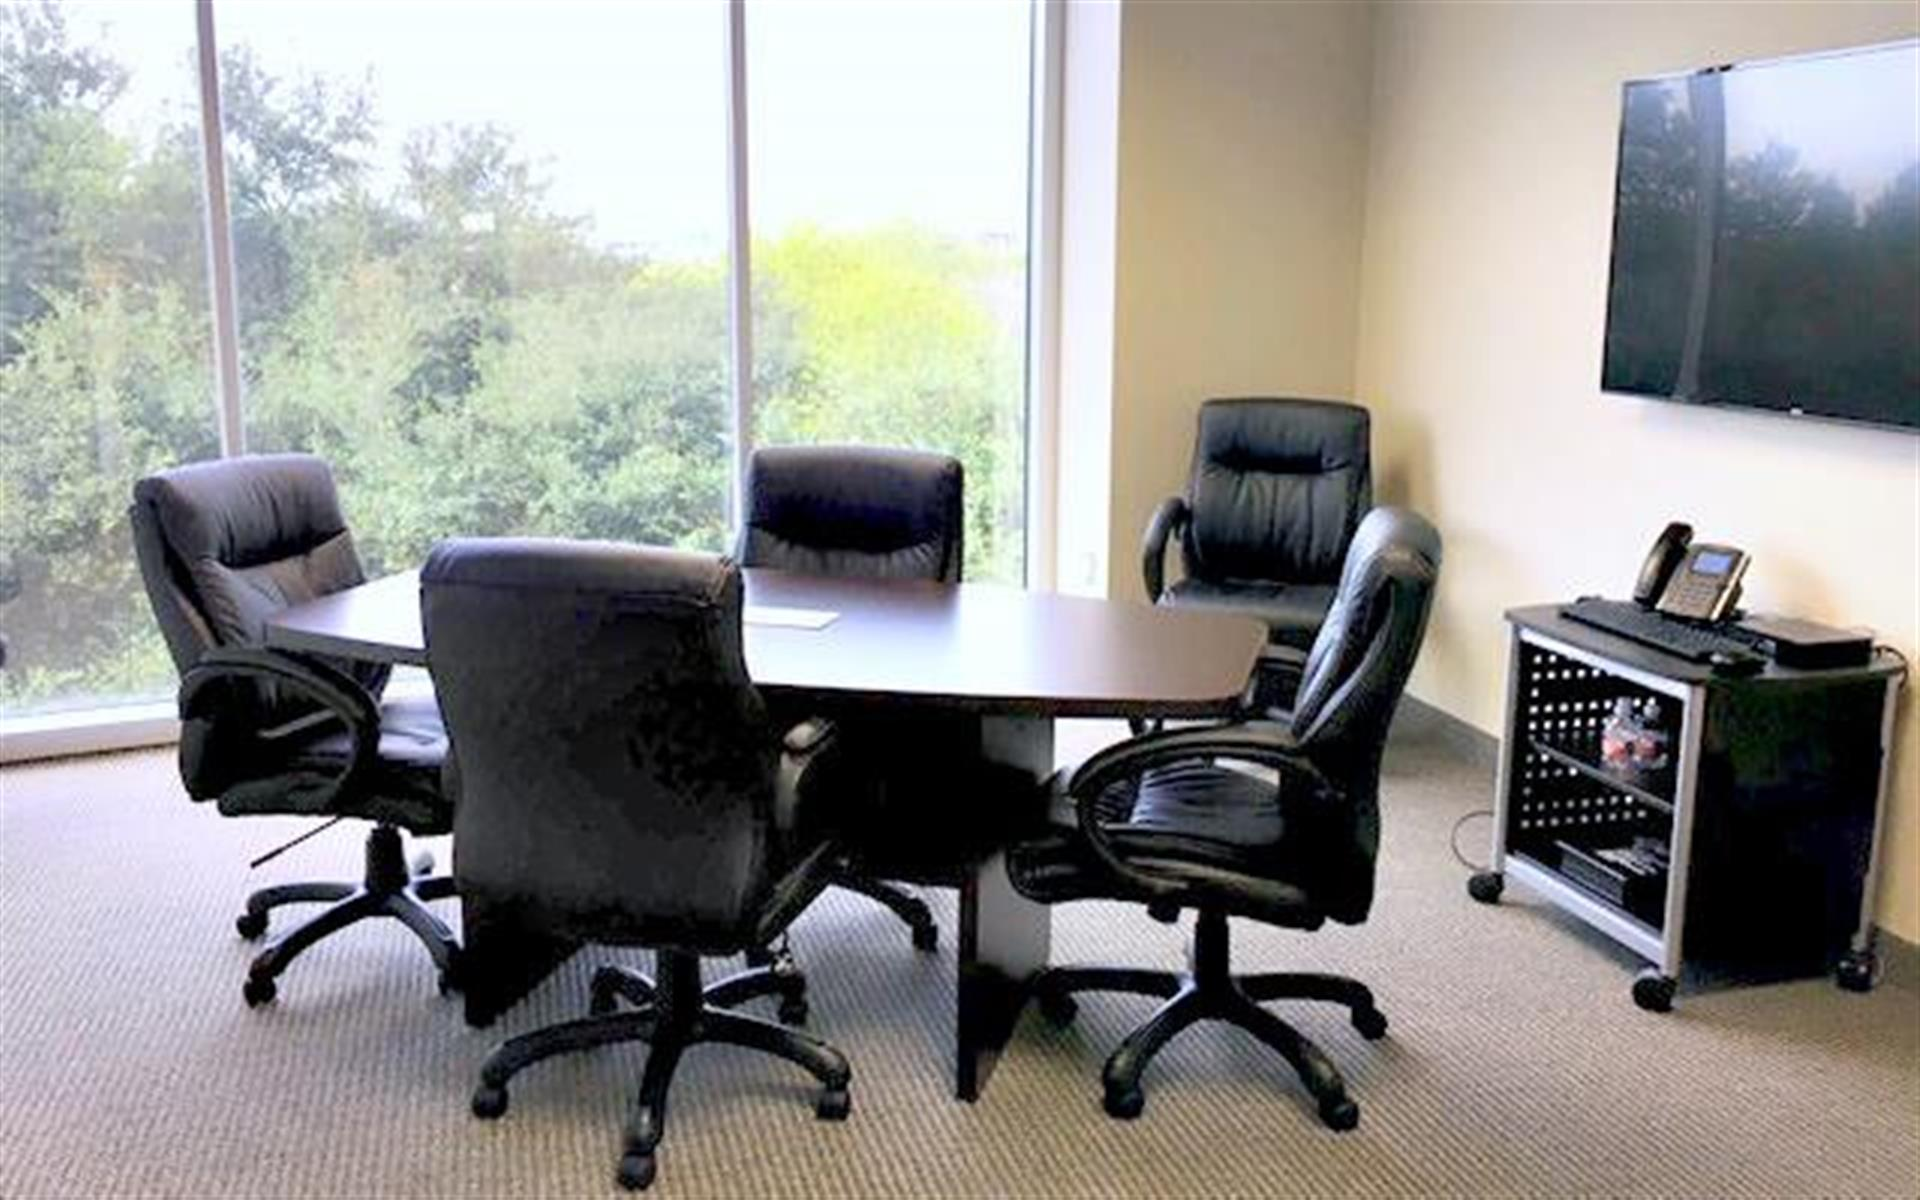 CUBExec - Interchange Building Executive Suites - Small Conference Room